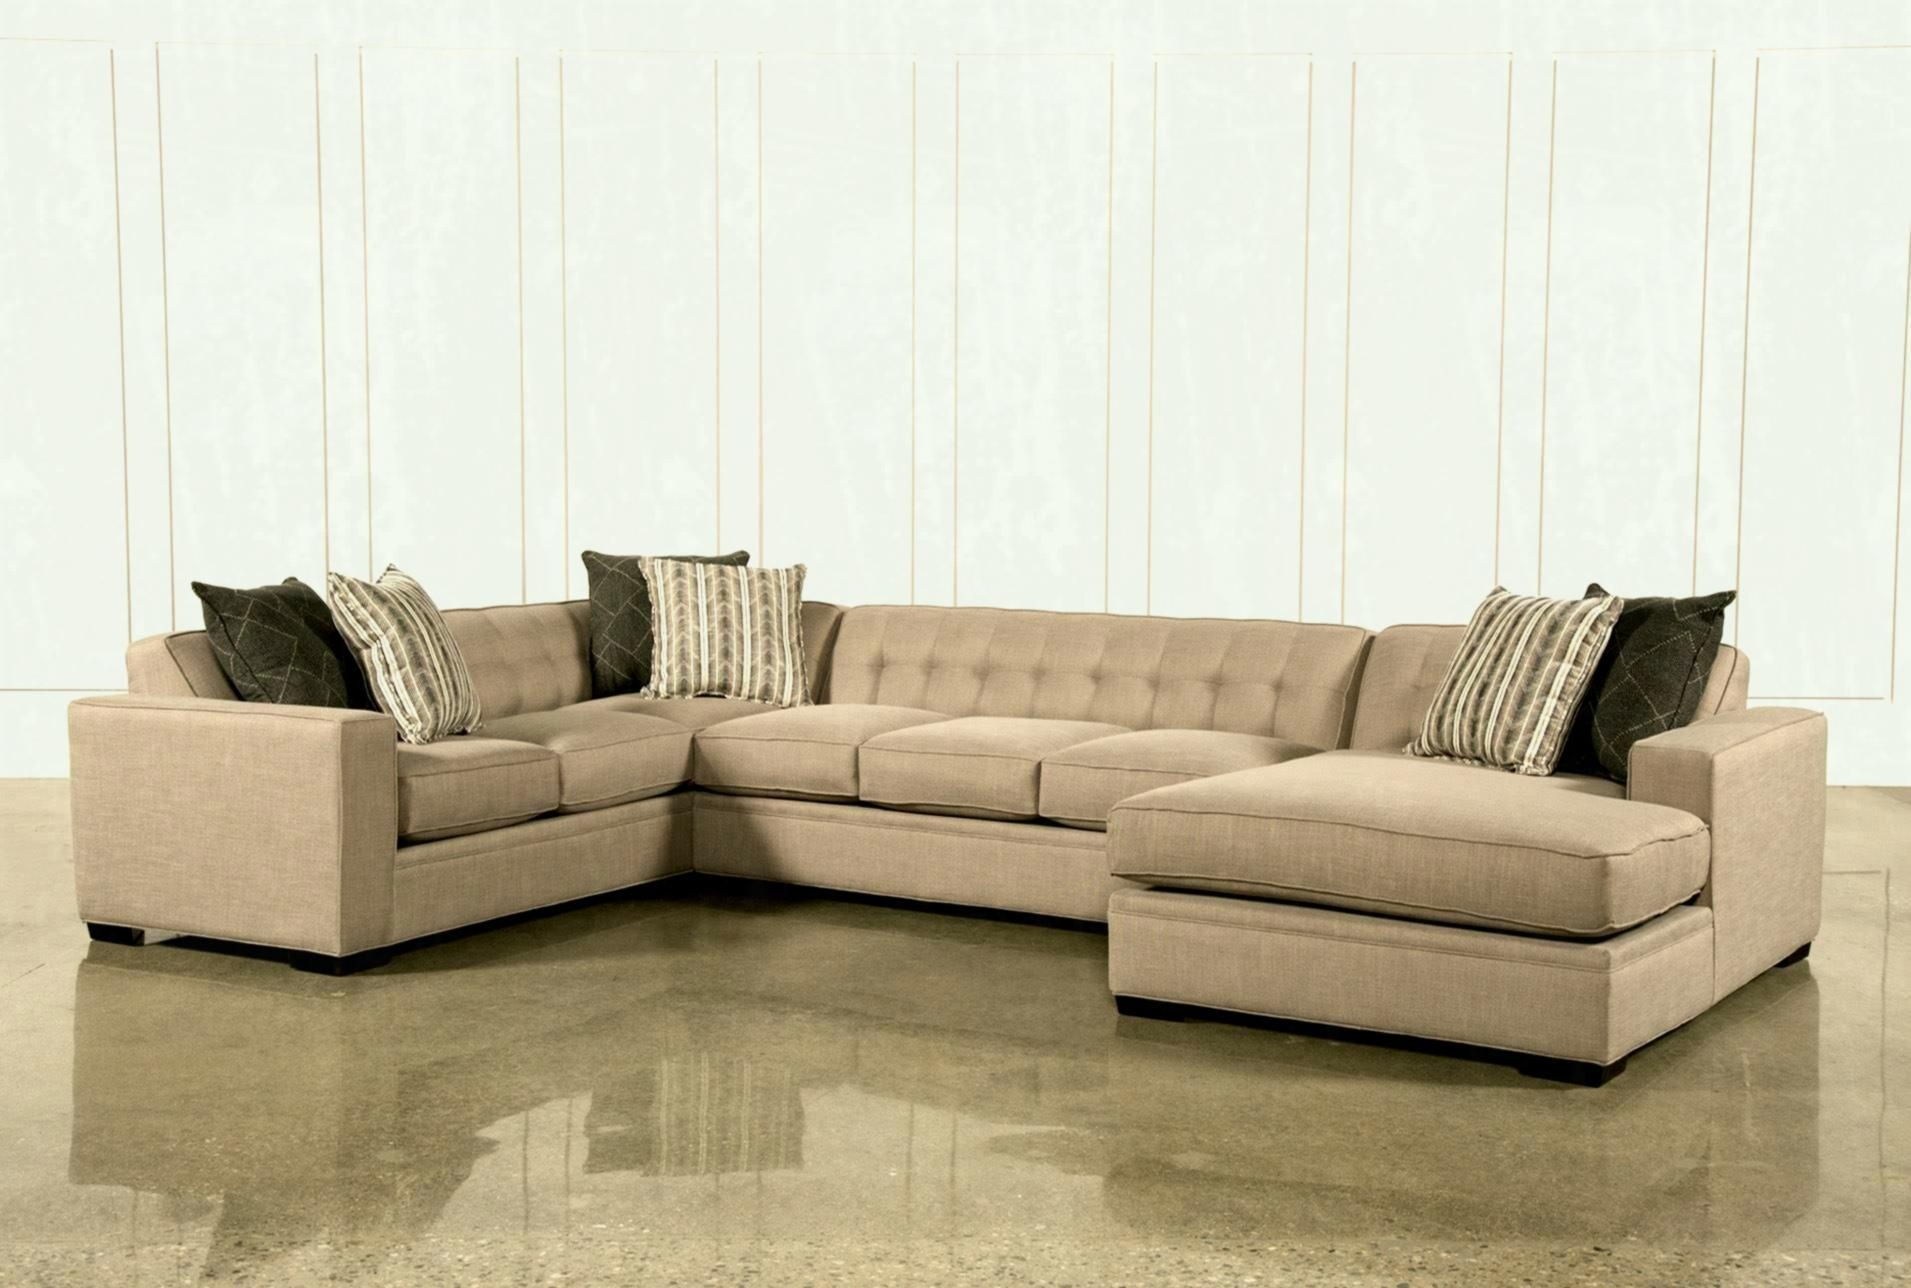 Living Spaces Sectional - Tidex within Aspen 2 Piece Sleeper Sectionals With Laf Chaise (Image 16 of 30)